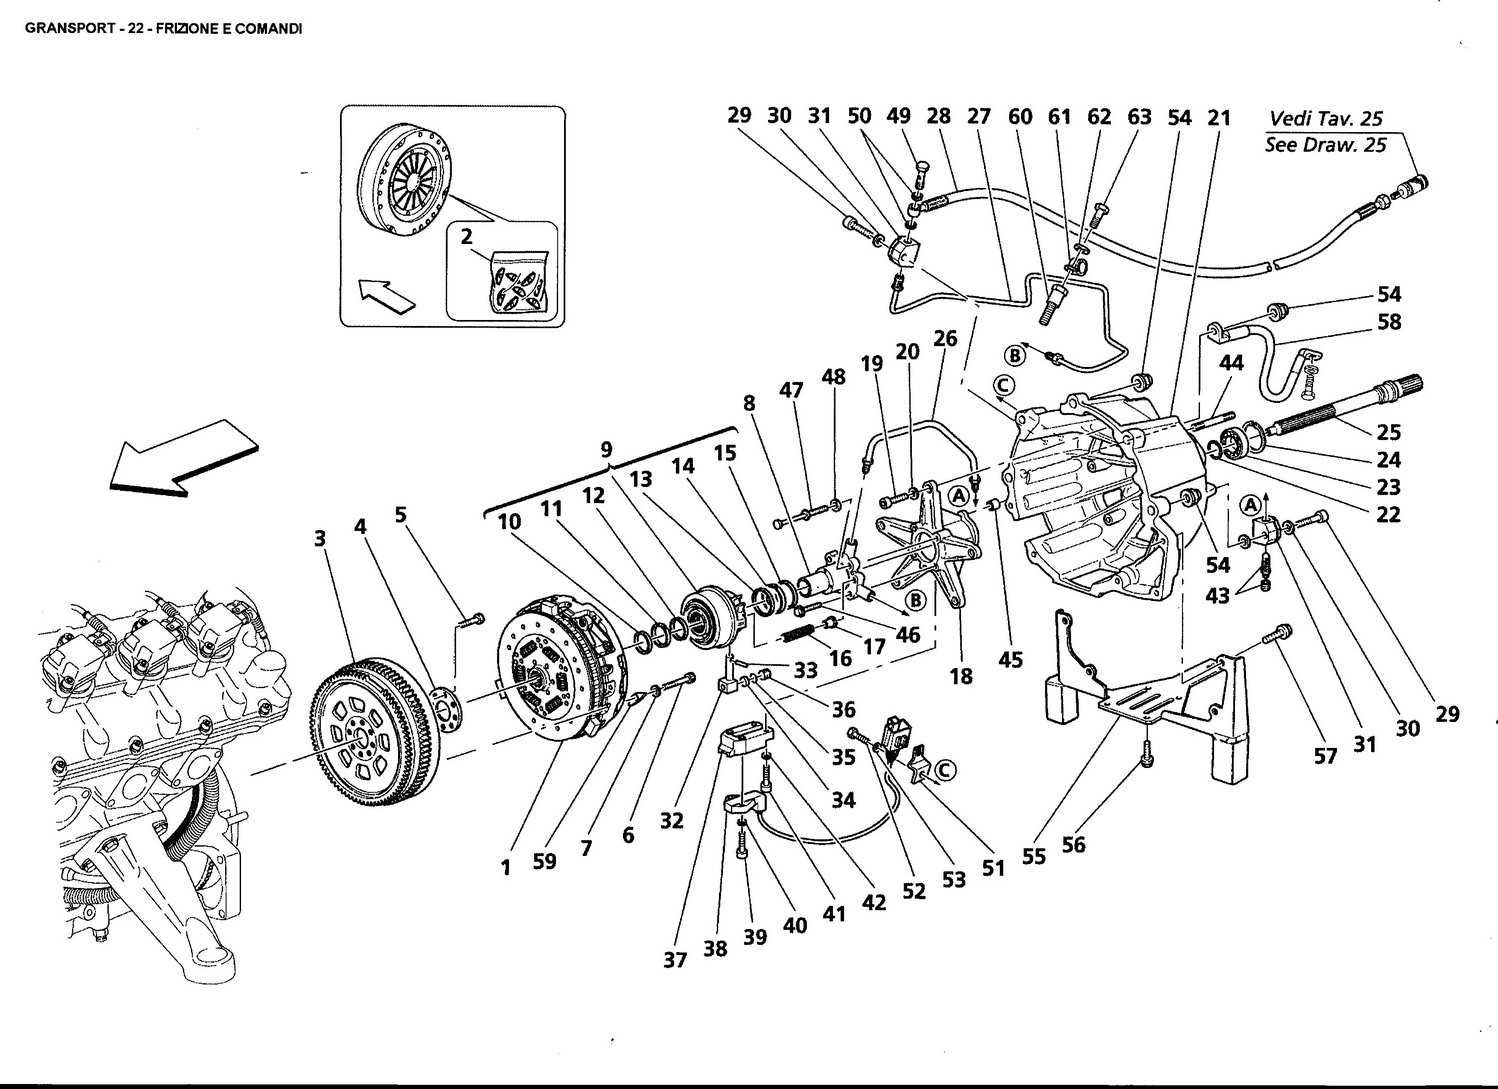 Wiring Diagram For A 1977 Vw Superbeetle